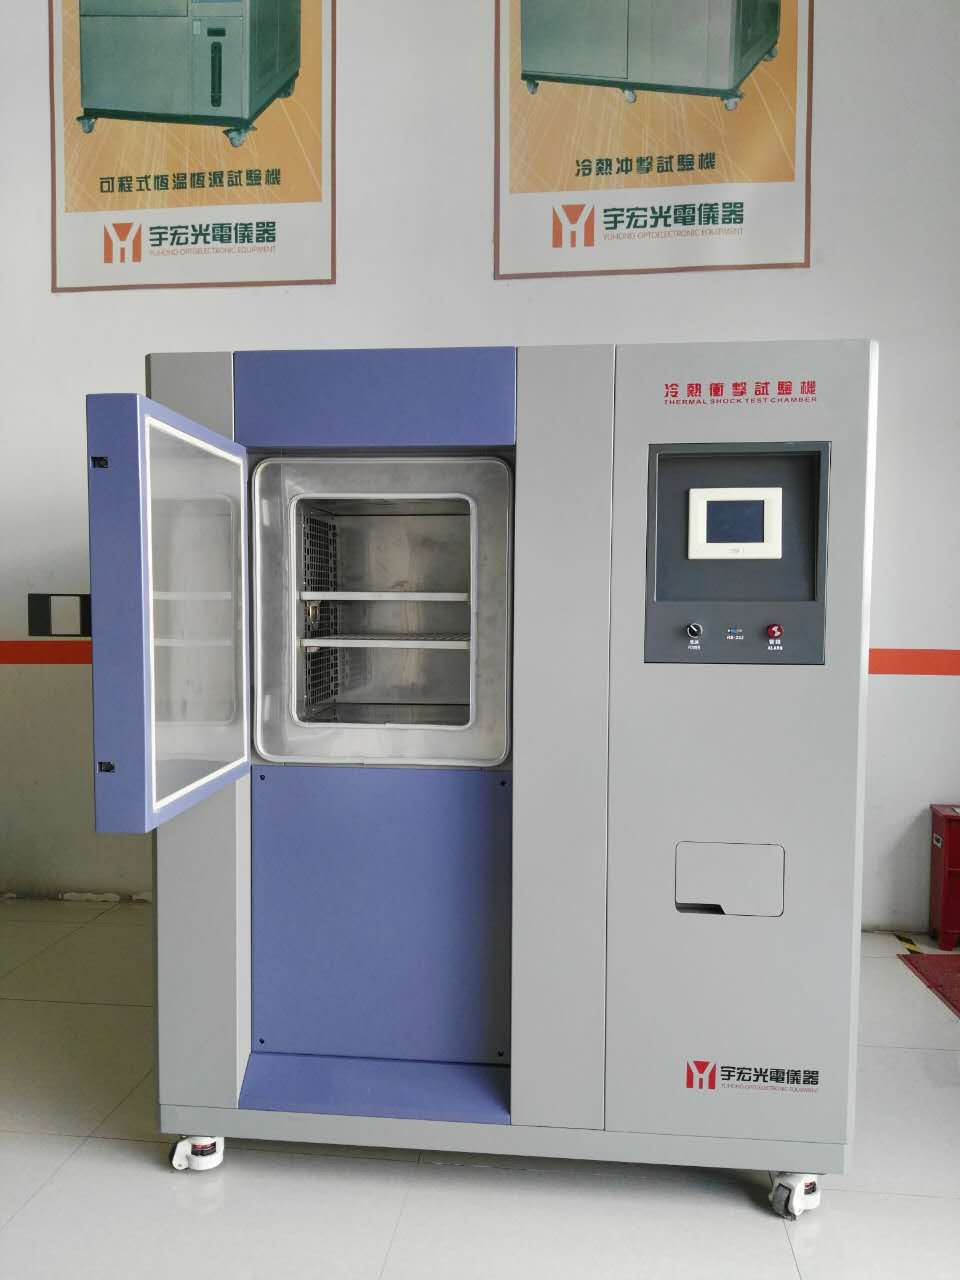 Air-cooled cold and hot shock test box manufacturer Suzhou Yuhong Optoelectronic Technology Supply